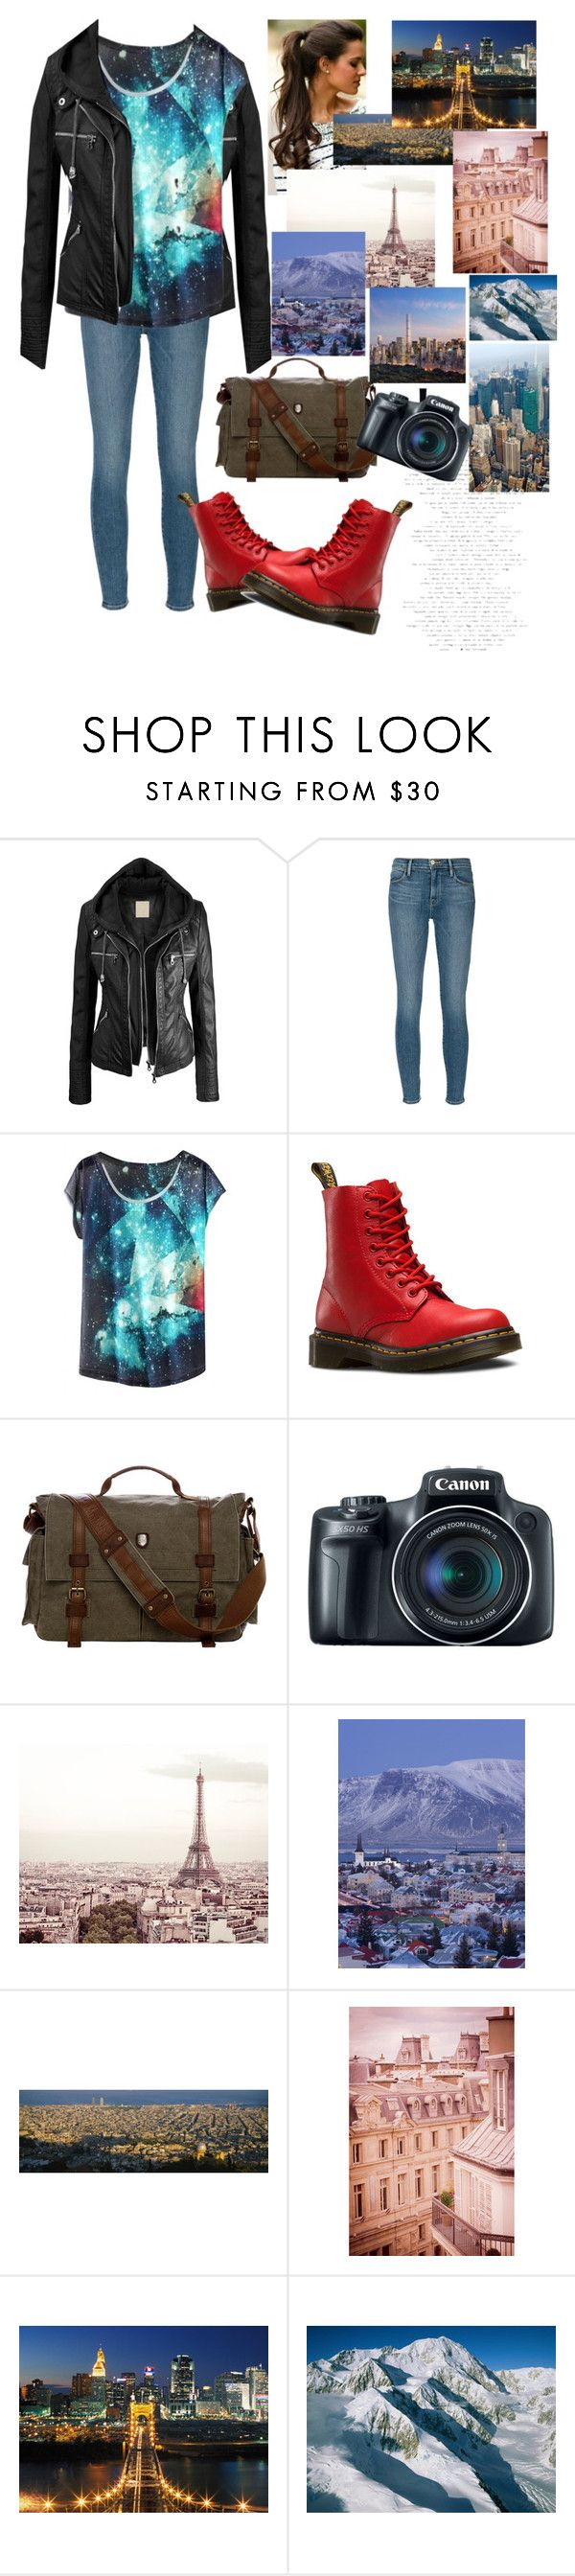 """Casual Camera"" by goar-sofia ❤ liked on Polyvore featuring Frame Denim, Dr. Martens and Avenue"